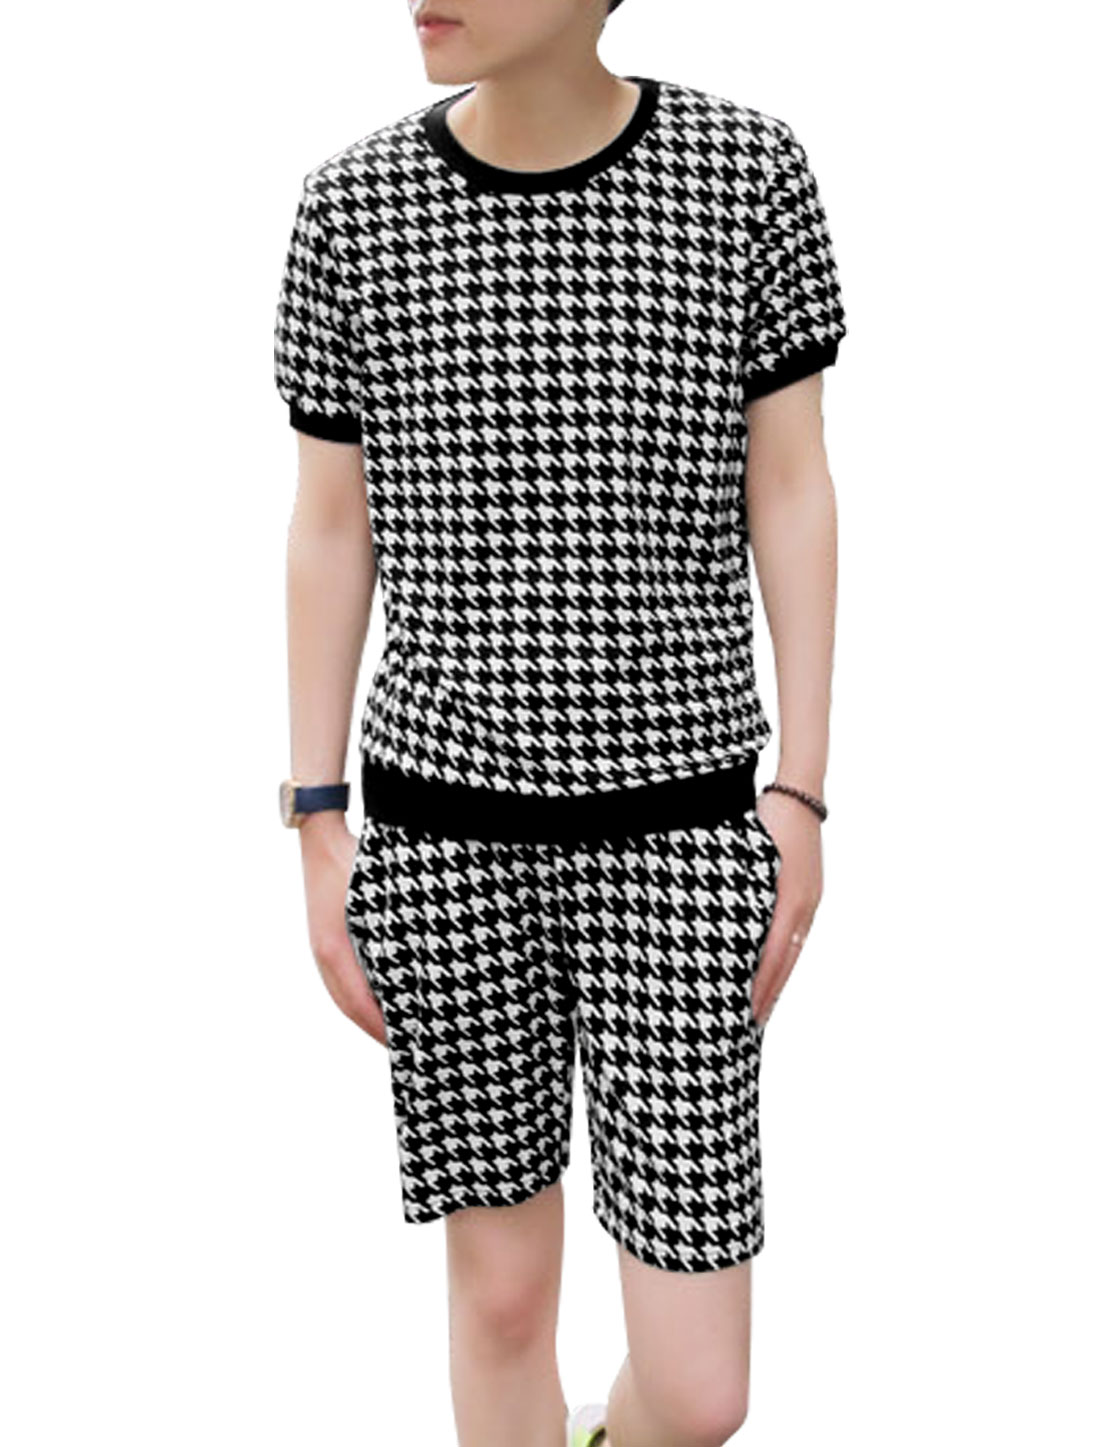 Men Houndstooth Pattern Top w Drawstring Chic Shorts Black White S